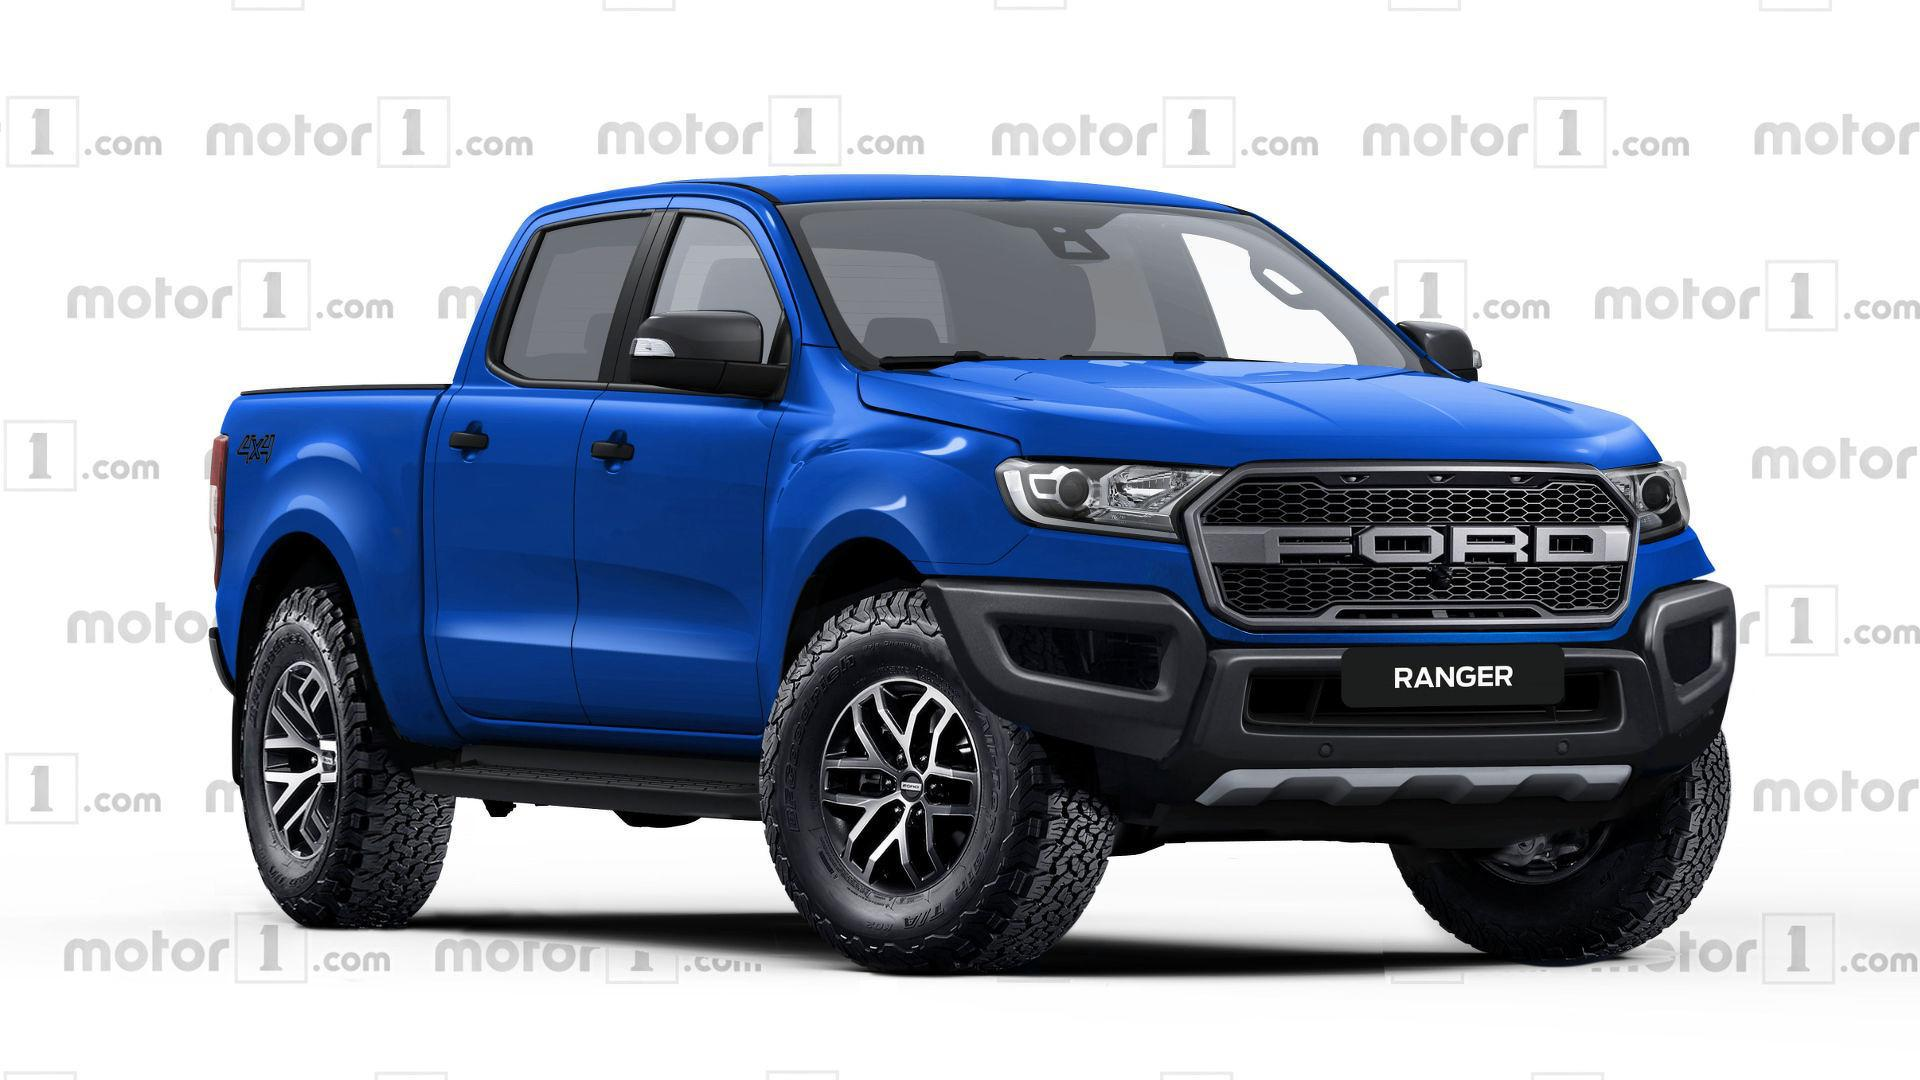 Ford Ranger Raptor Rendered Ready To Rival Colorado Zr2 Regarding ...